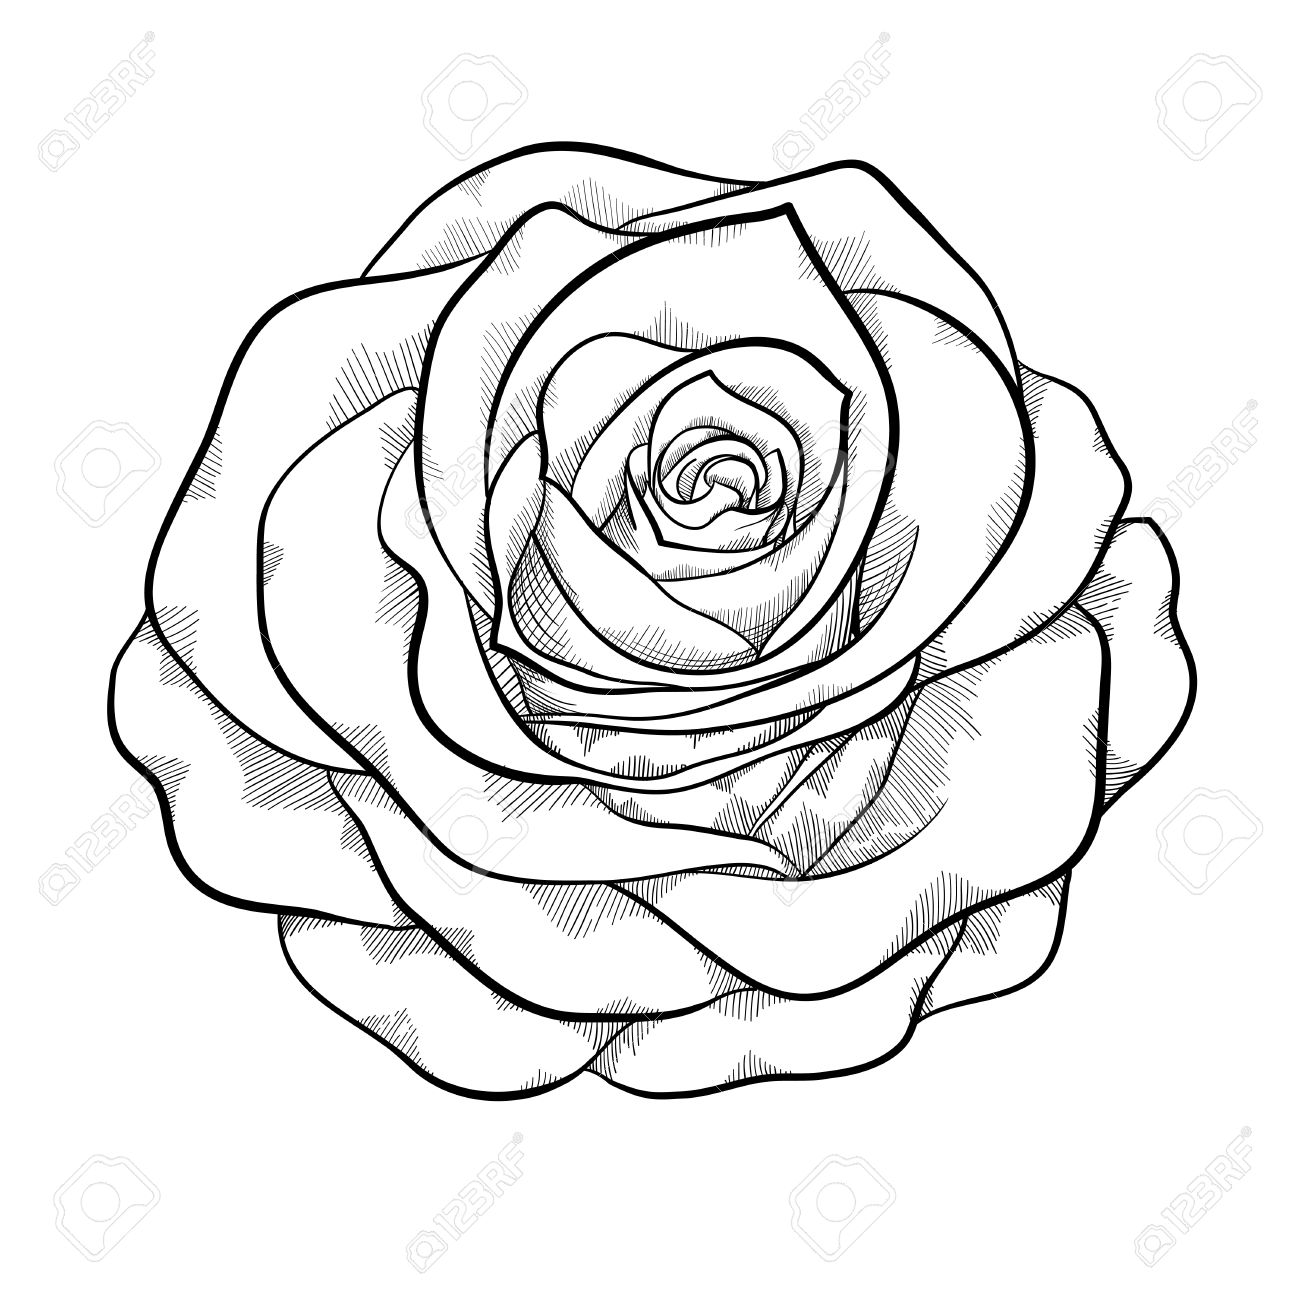 1300x1299 Beautiful Monochrome Black And White Rose Isolated On White